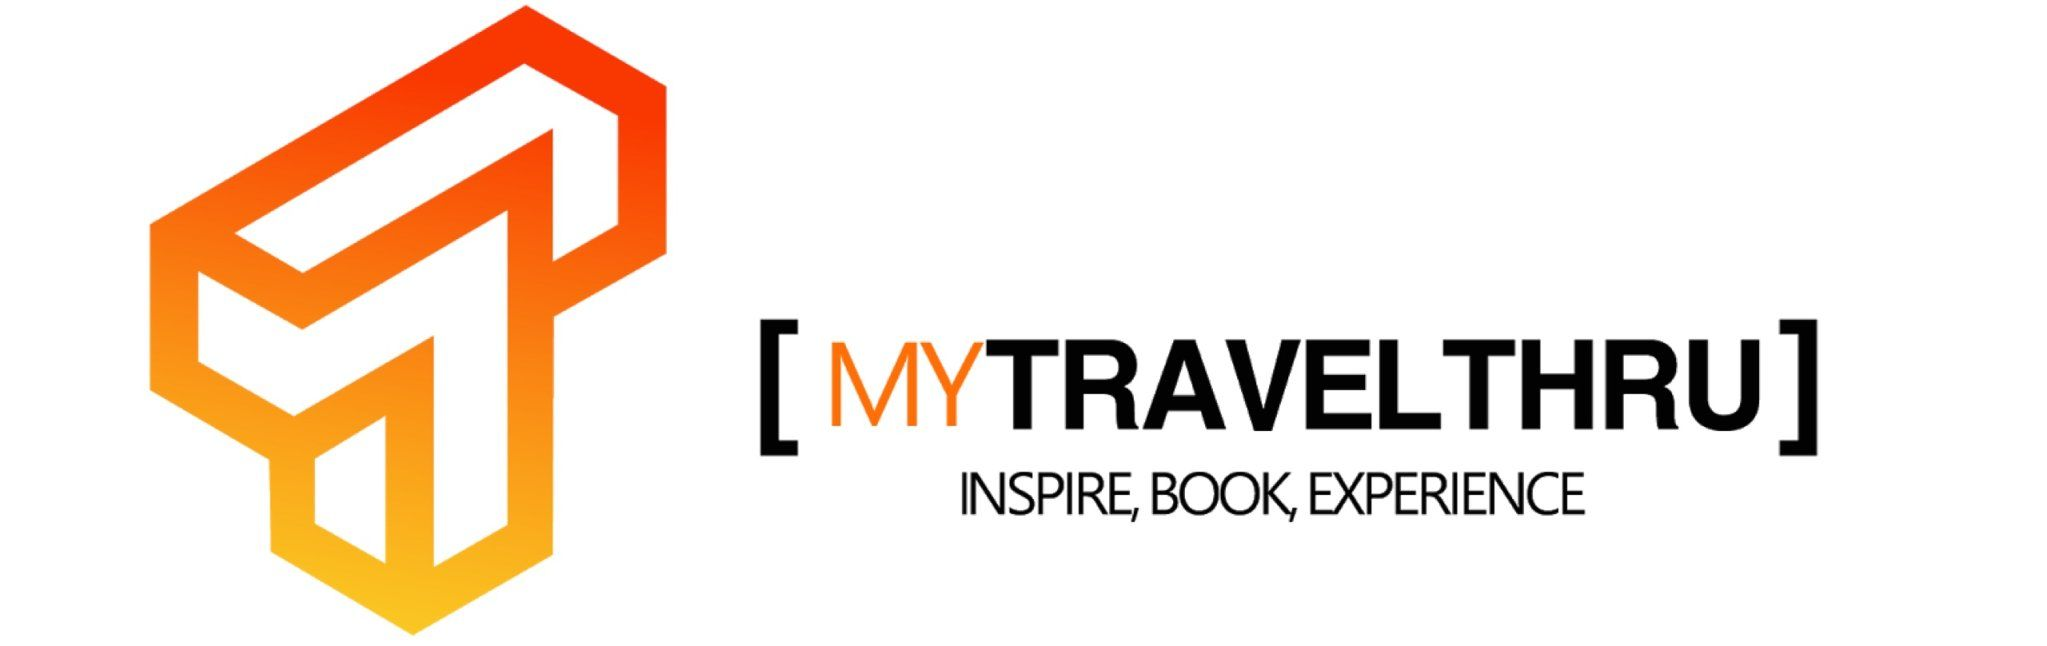 Tue Anh Travel logo